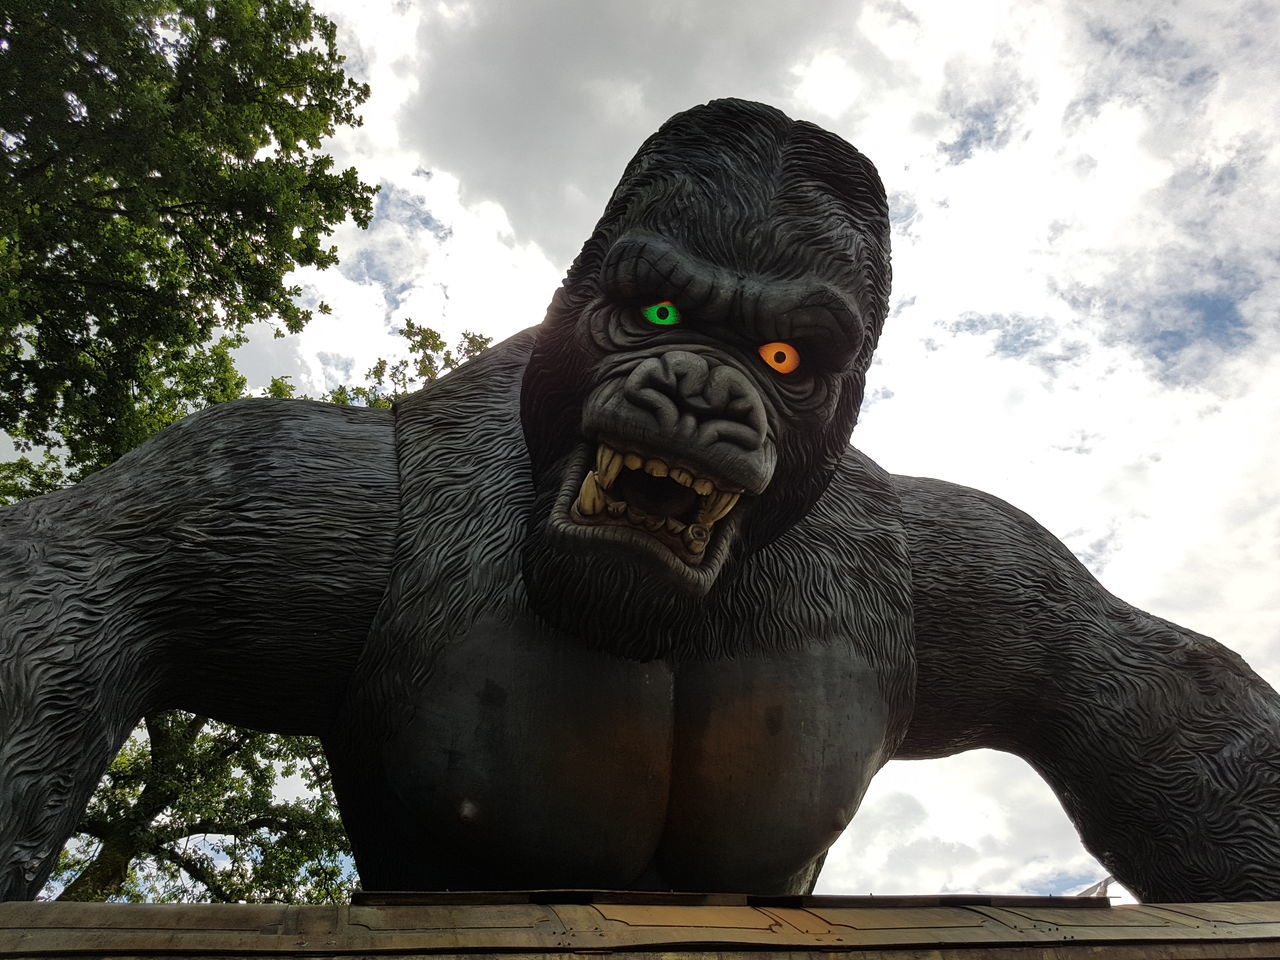 Hanging Out Taking Photos Check This Out Enjoying Life Belgium Attraction Park Bobbejaanland Freedom Enjoy The Little Things Smartphonephotography No Filter, No Edit, Just Photography Traveling Enjoying Life Taking Photos Summertime Theme Park Summer Vibes Amazing View Amazed King Kong King Kong View King Kong The Ride Attraction